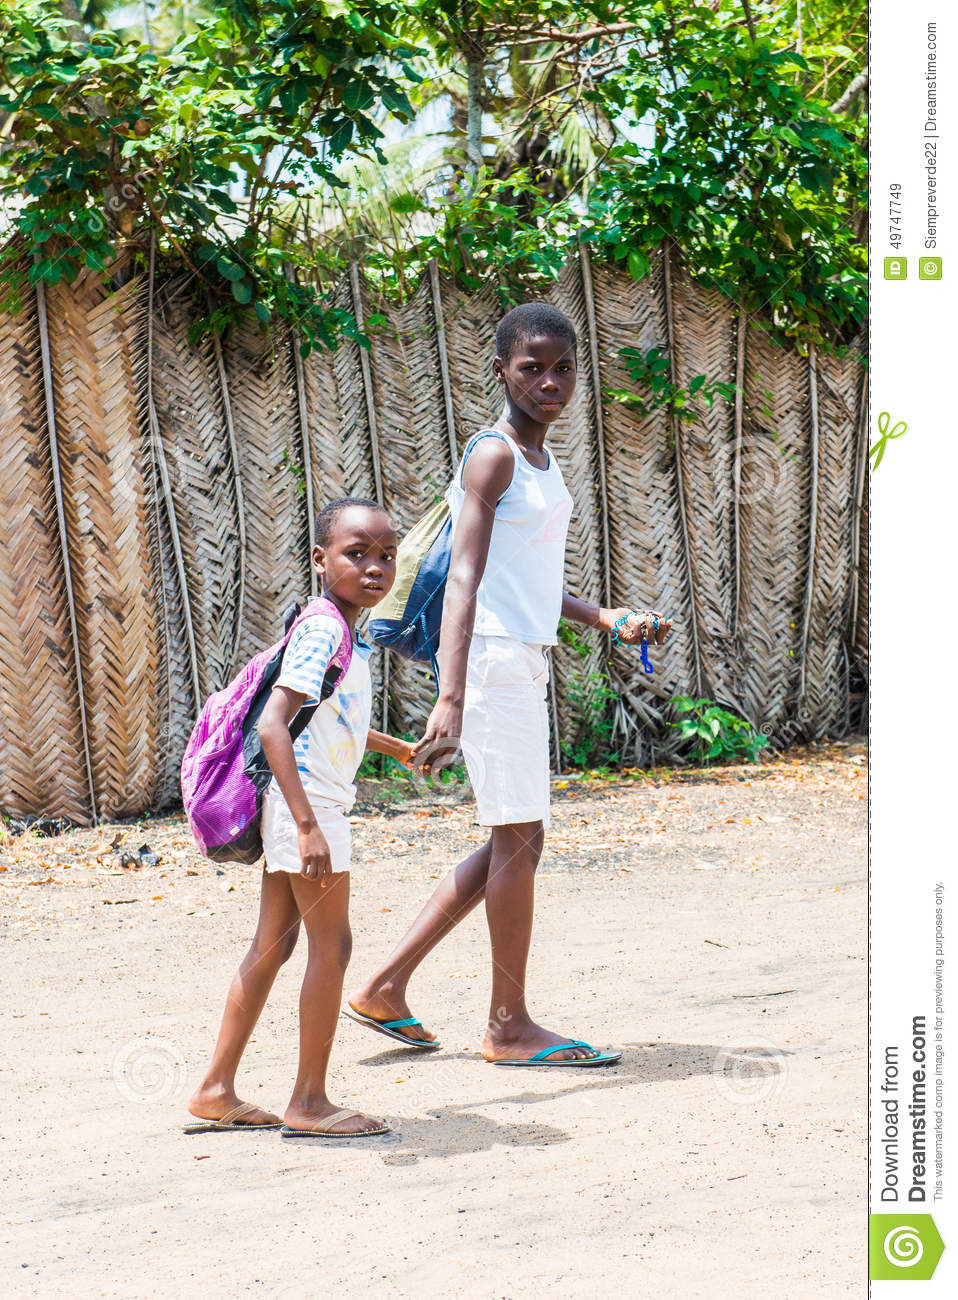 People in Togo, Africa